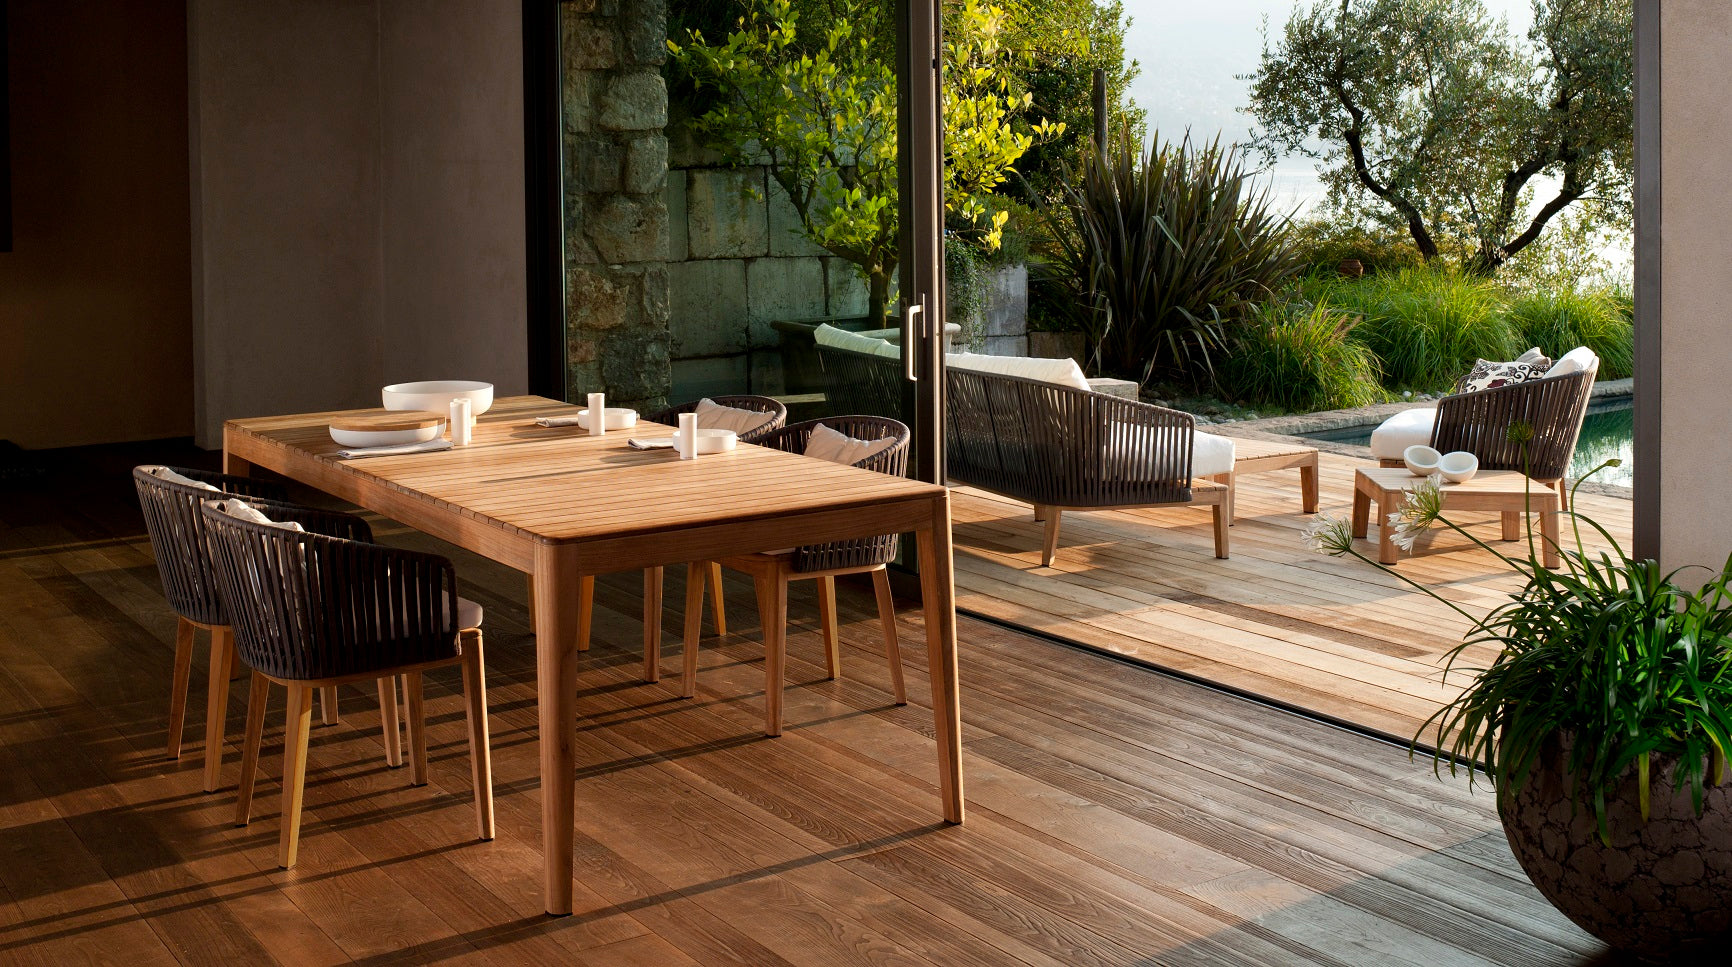 What You Need To Know About Teak Outdoor Furniture Cosh Living